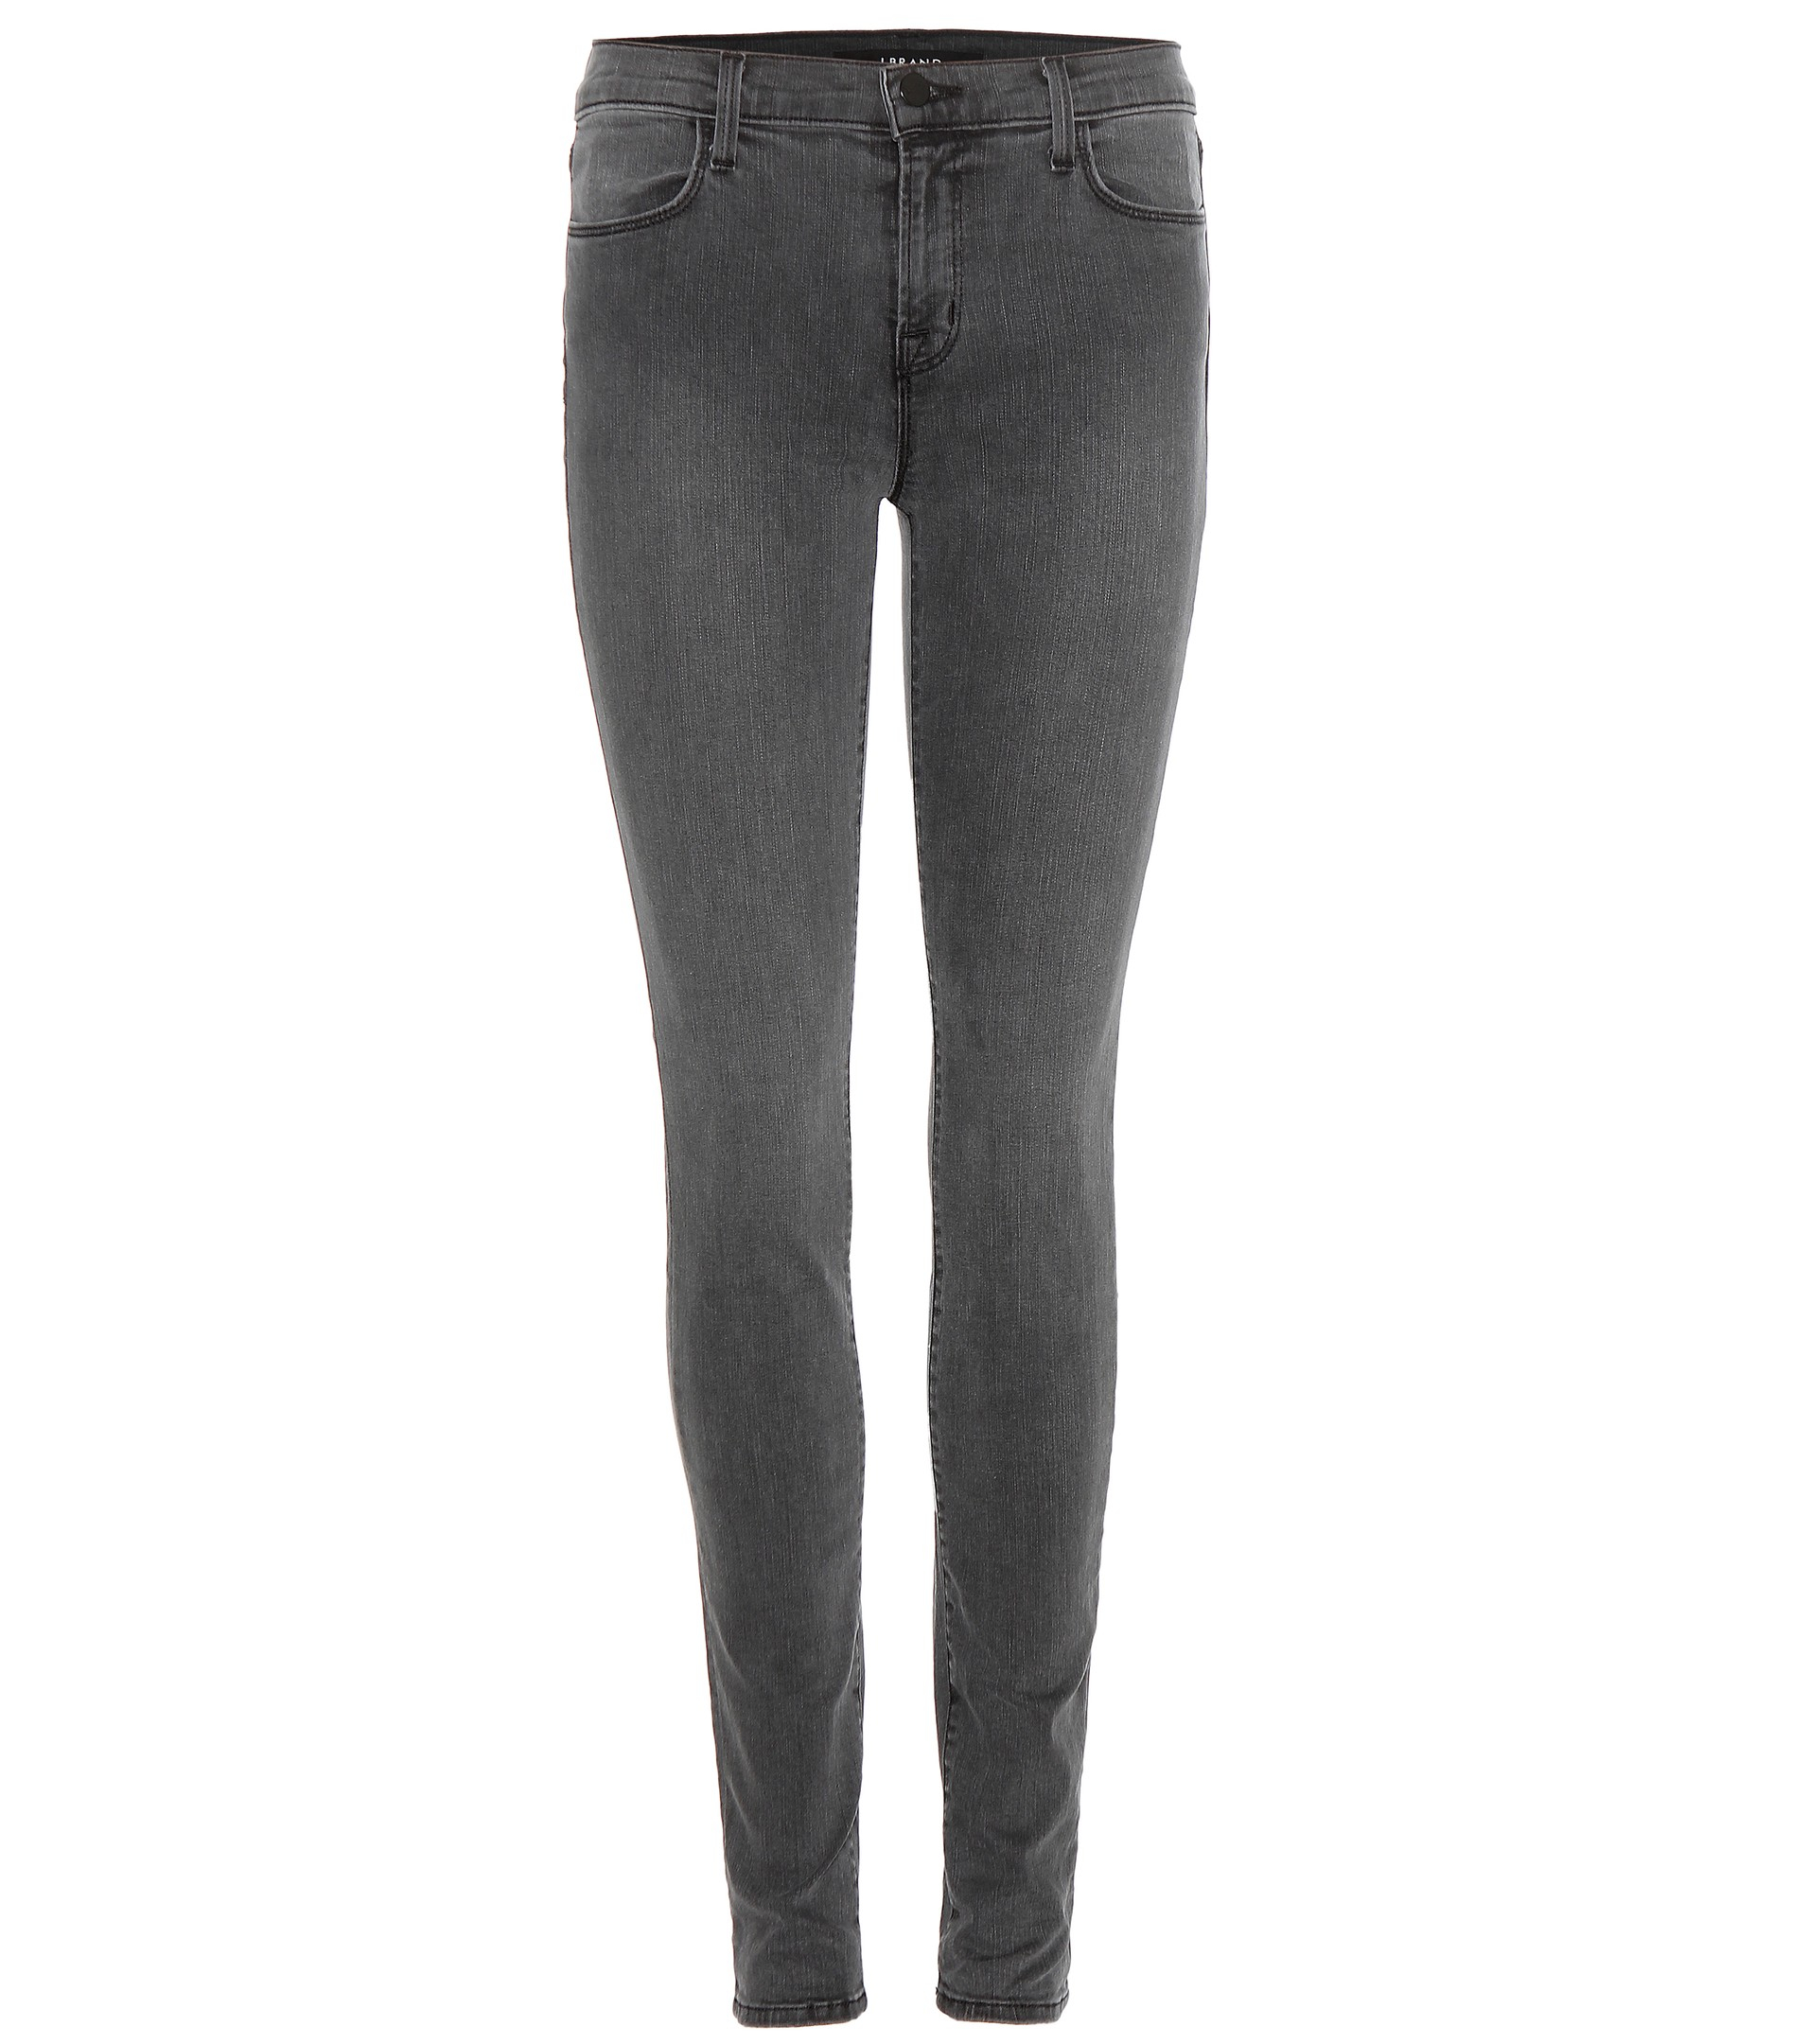 J Brand Mid-rise Super Skinny Jeans in Grey